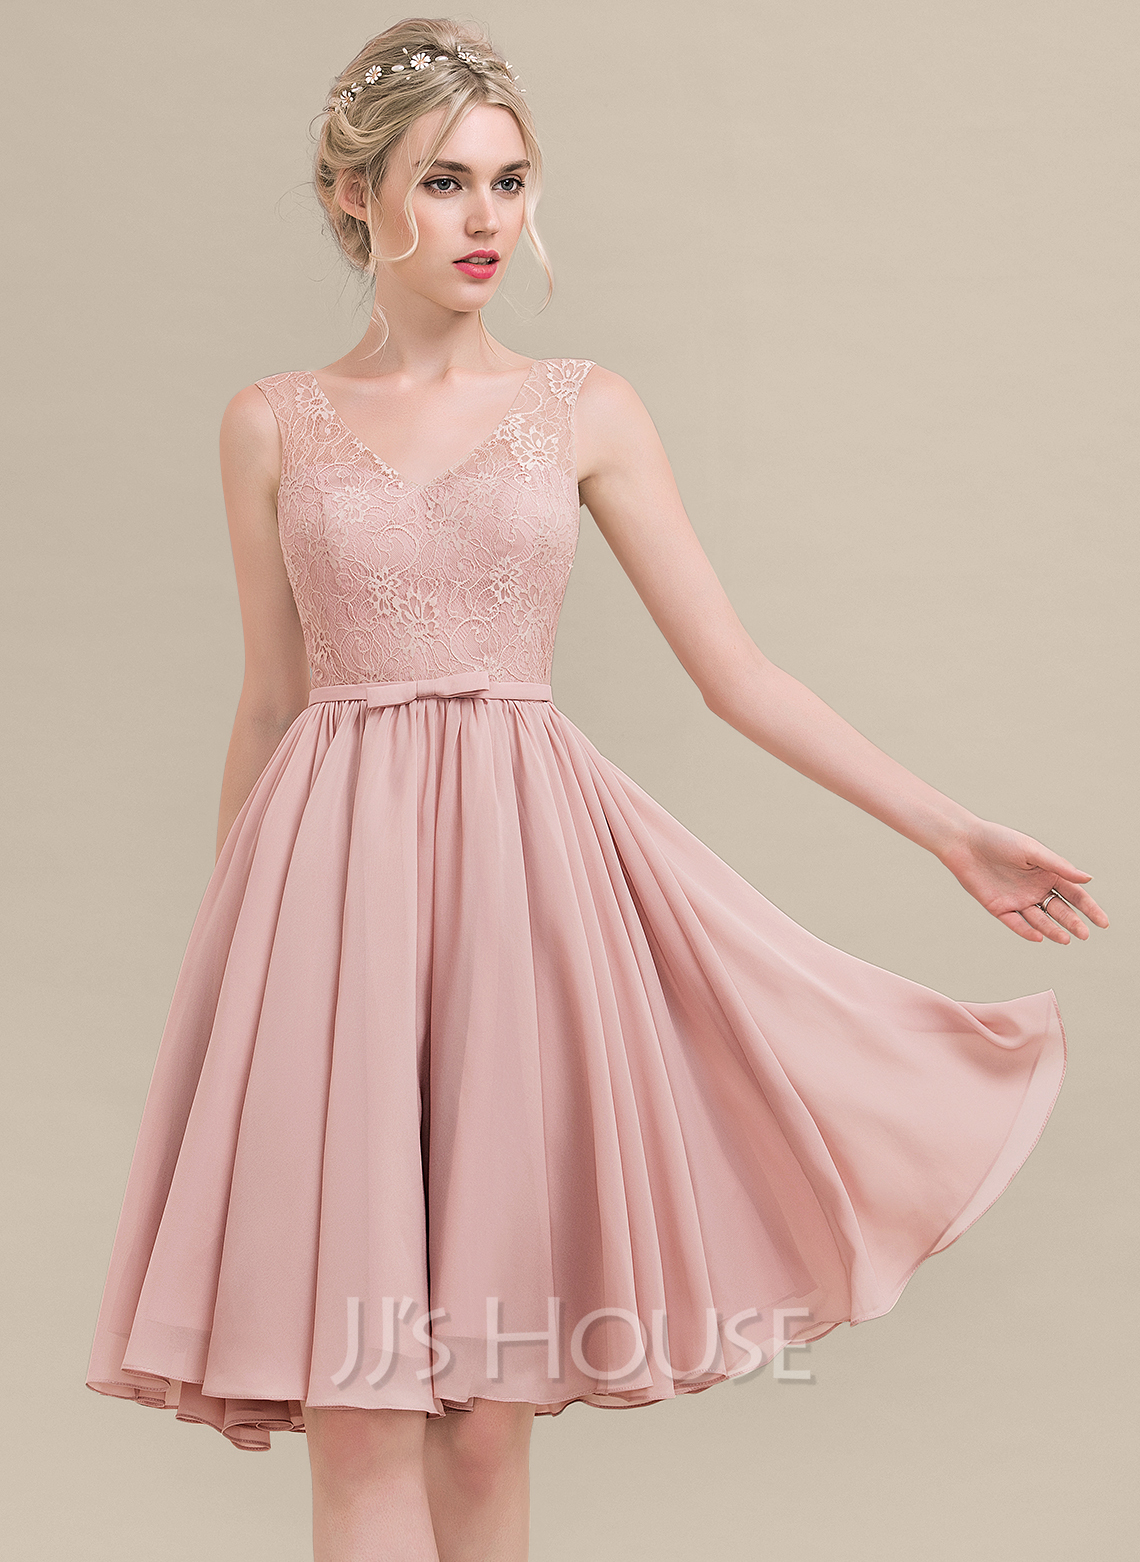 A-Line V-neck Knee-Length Chiffon Lace Bridesmaid Dress With Bow(s)